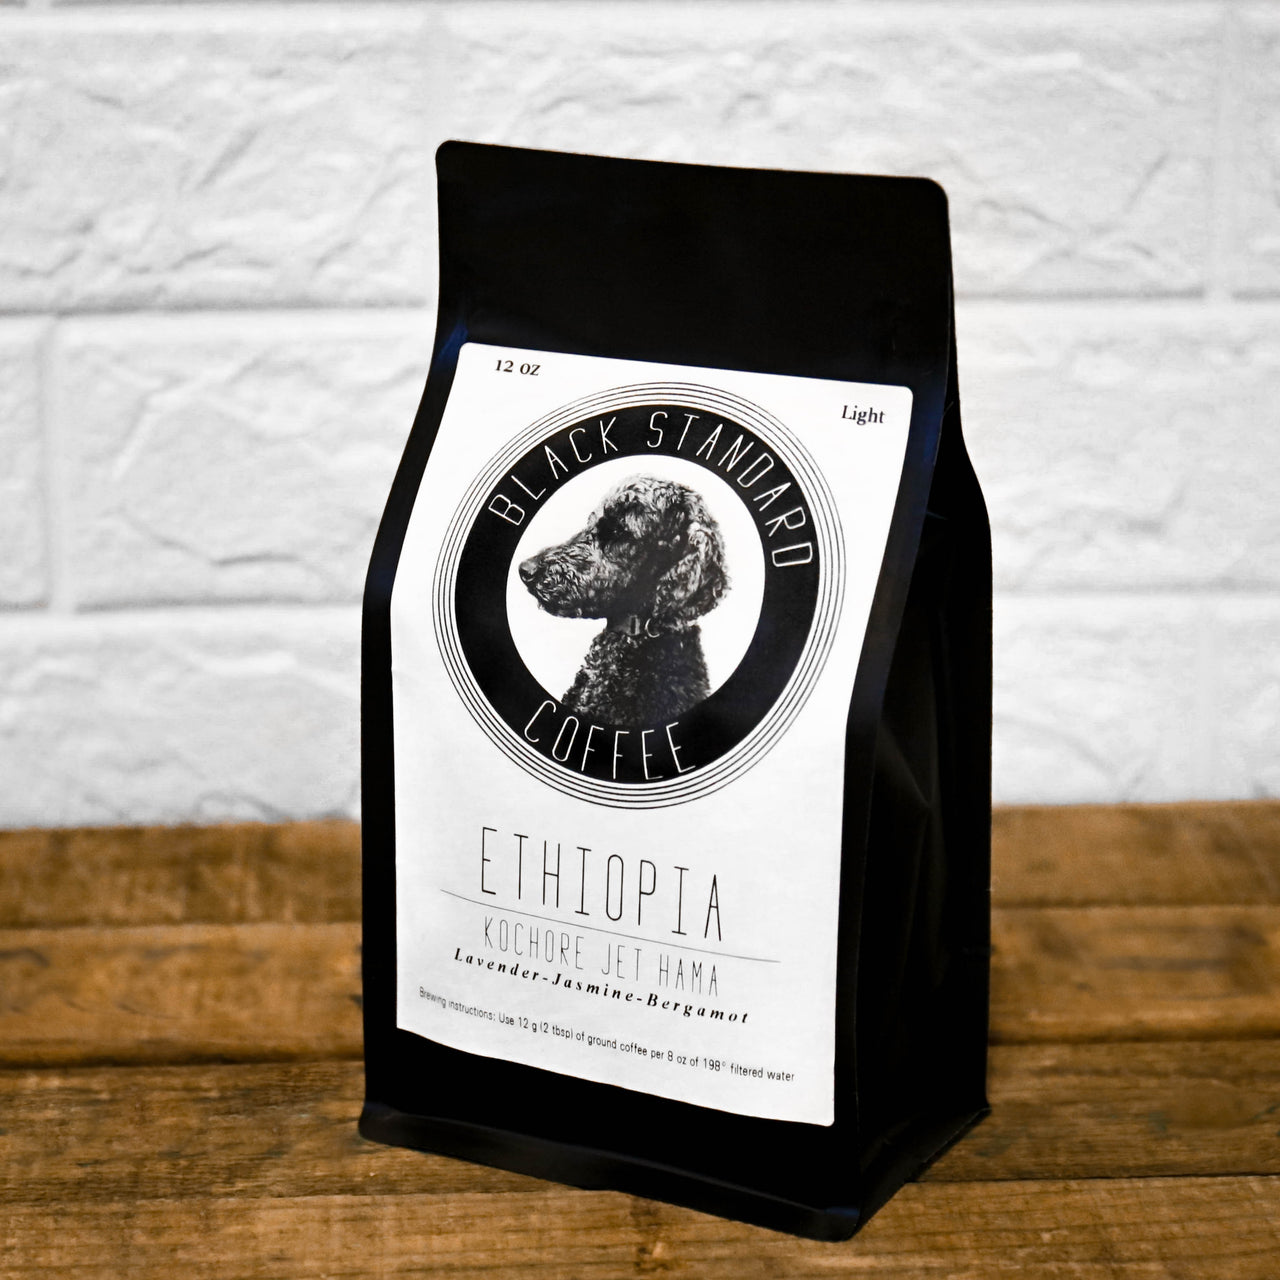 Ethiopia Kochore Jet Hama | Light Roast - Black Standard Coffee